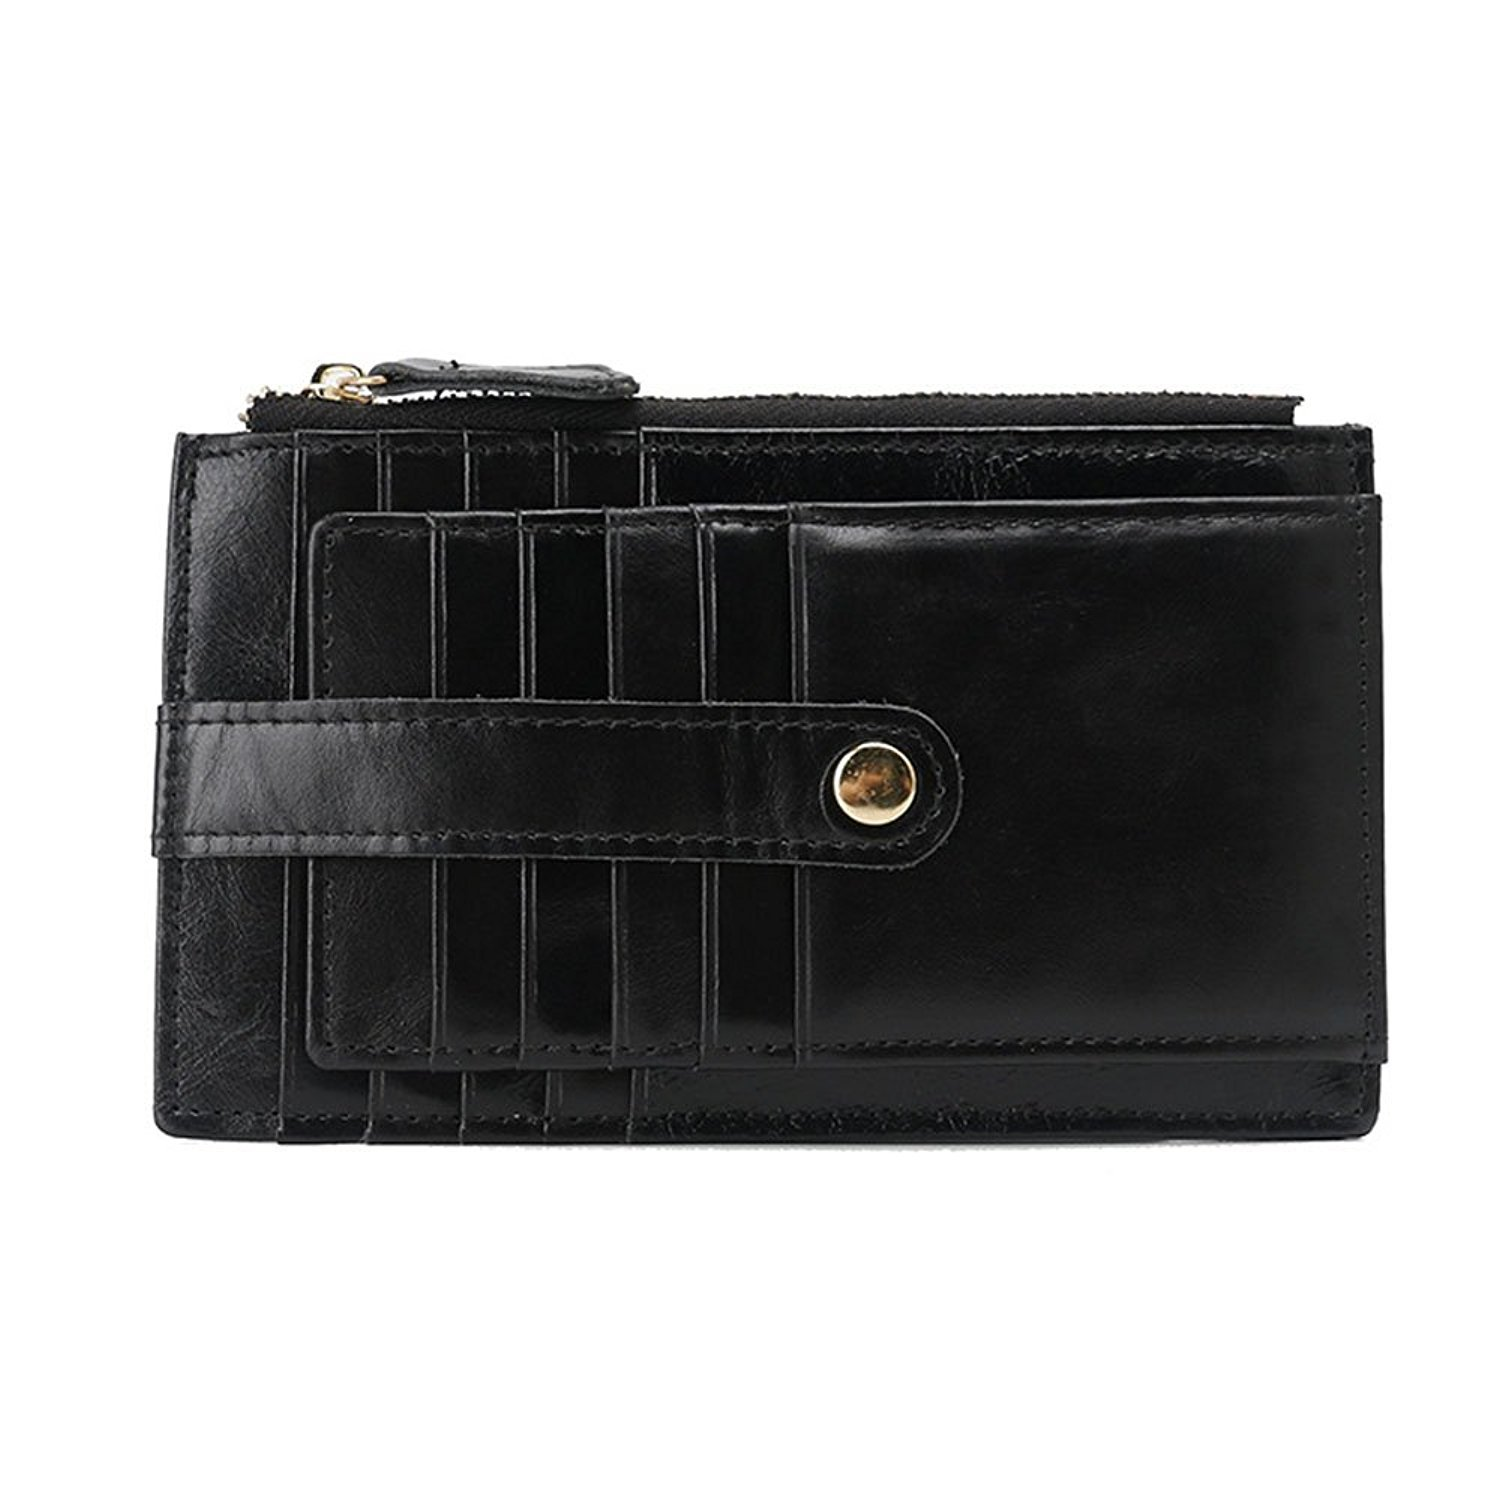 Onstro RFID Blocking Wallets for Women Genuine Leather Multi Credit Card Organizer with ID window by Onstro (Image #2)